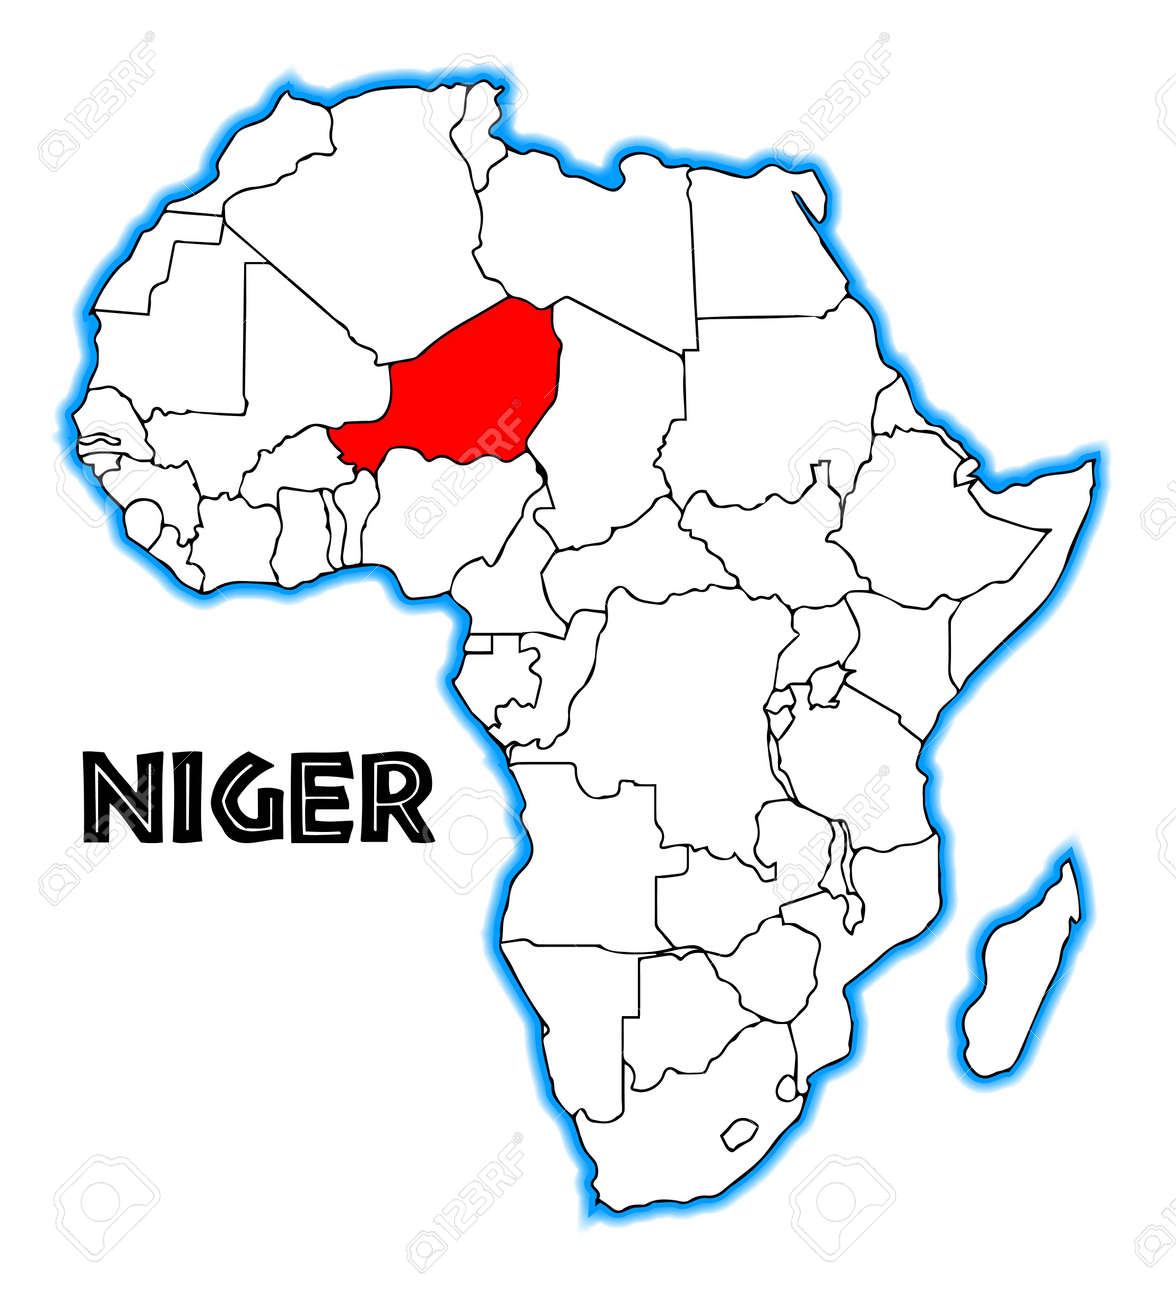 Niger Outline Inset Into A Map Of Africa Over A White Background